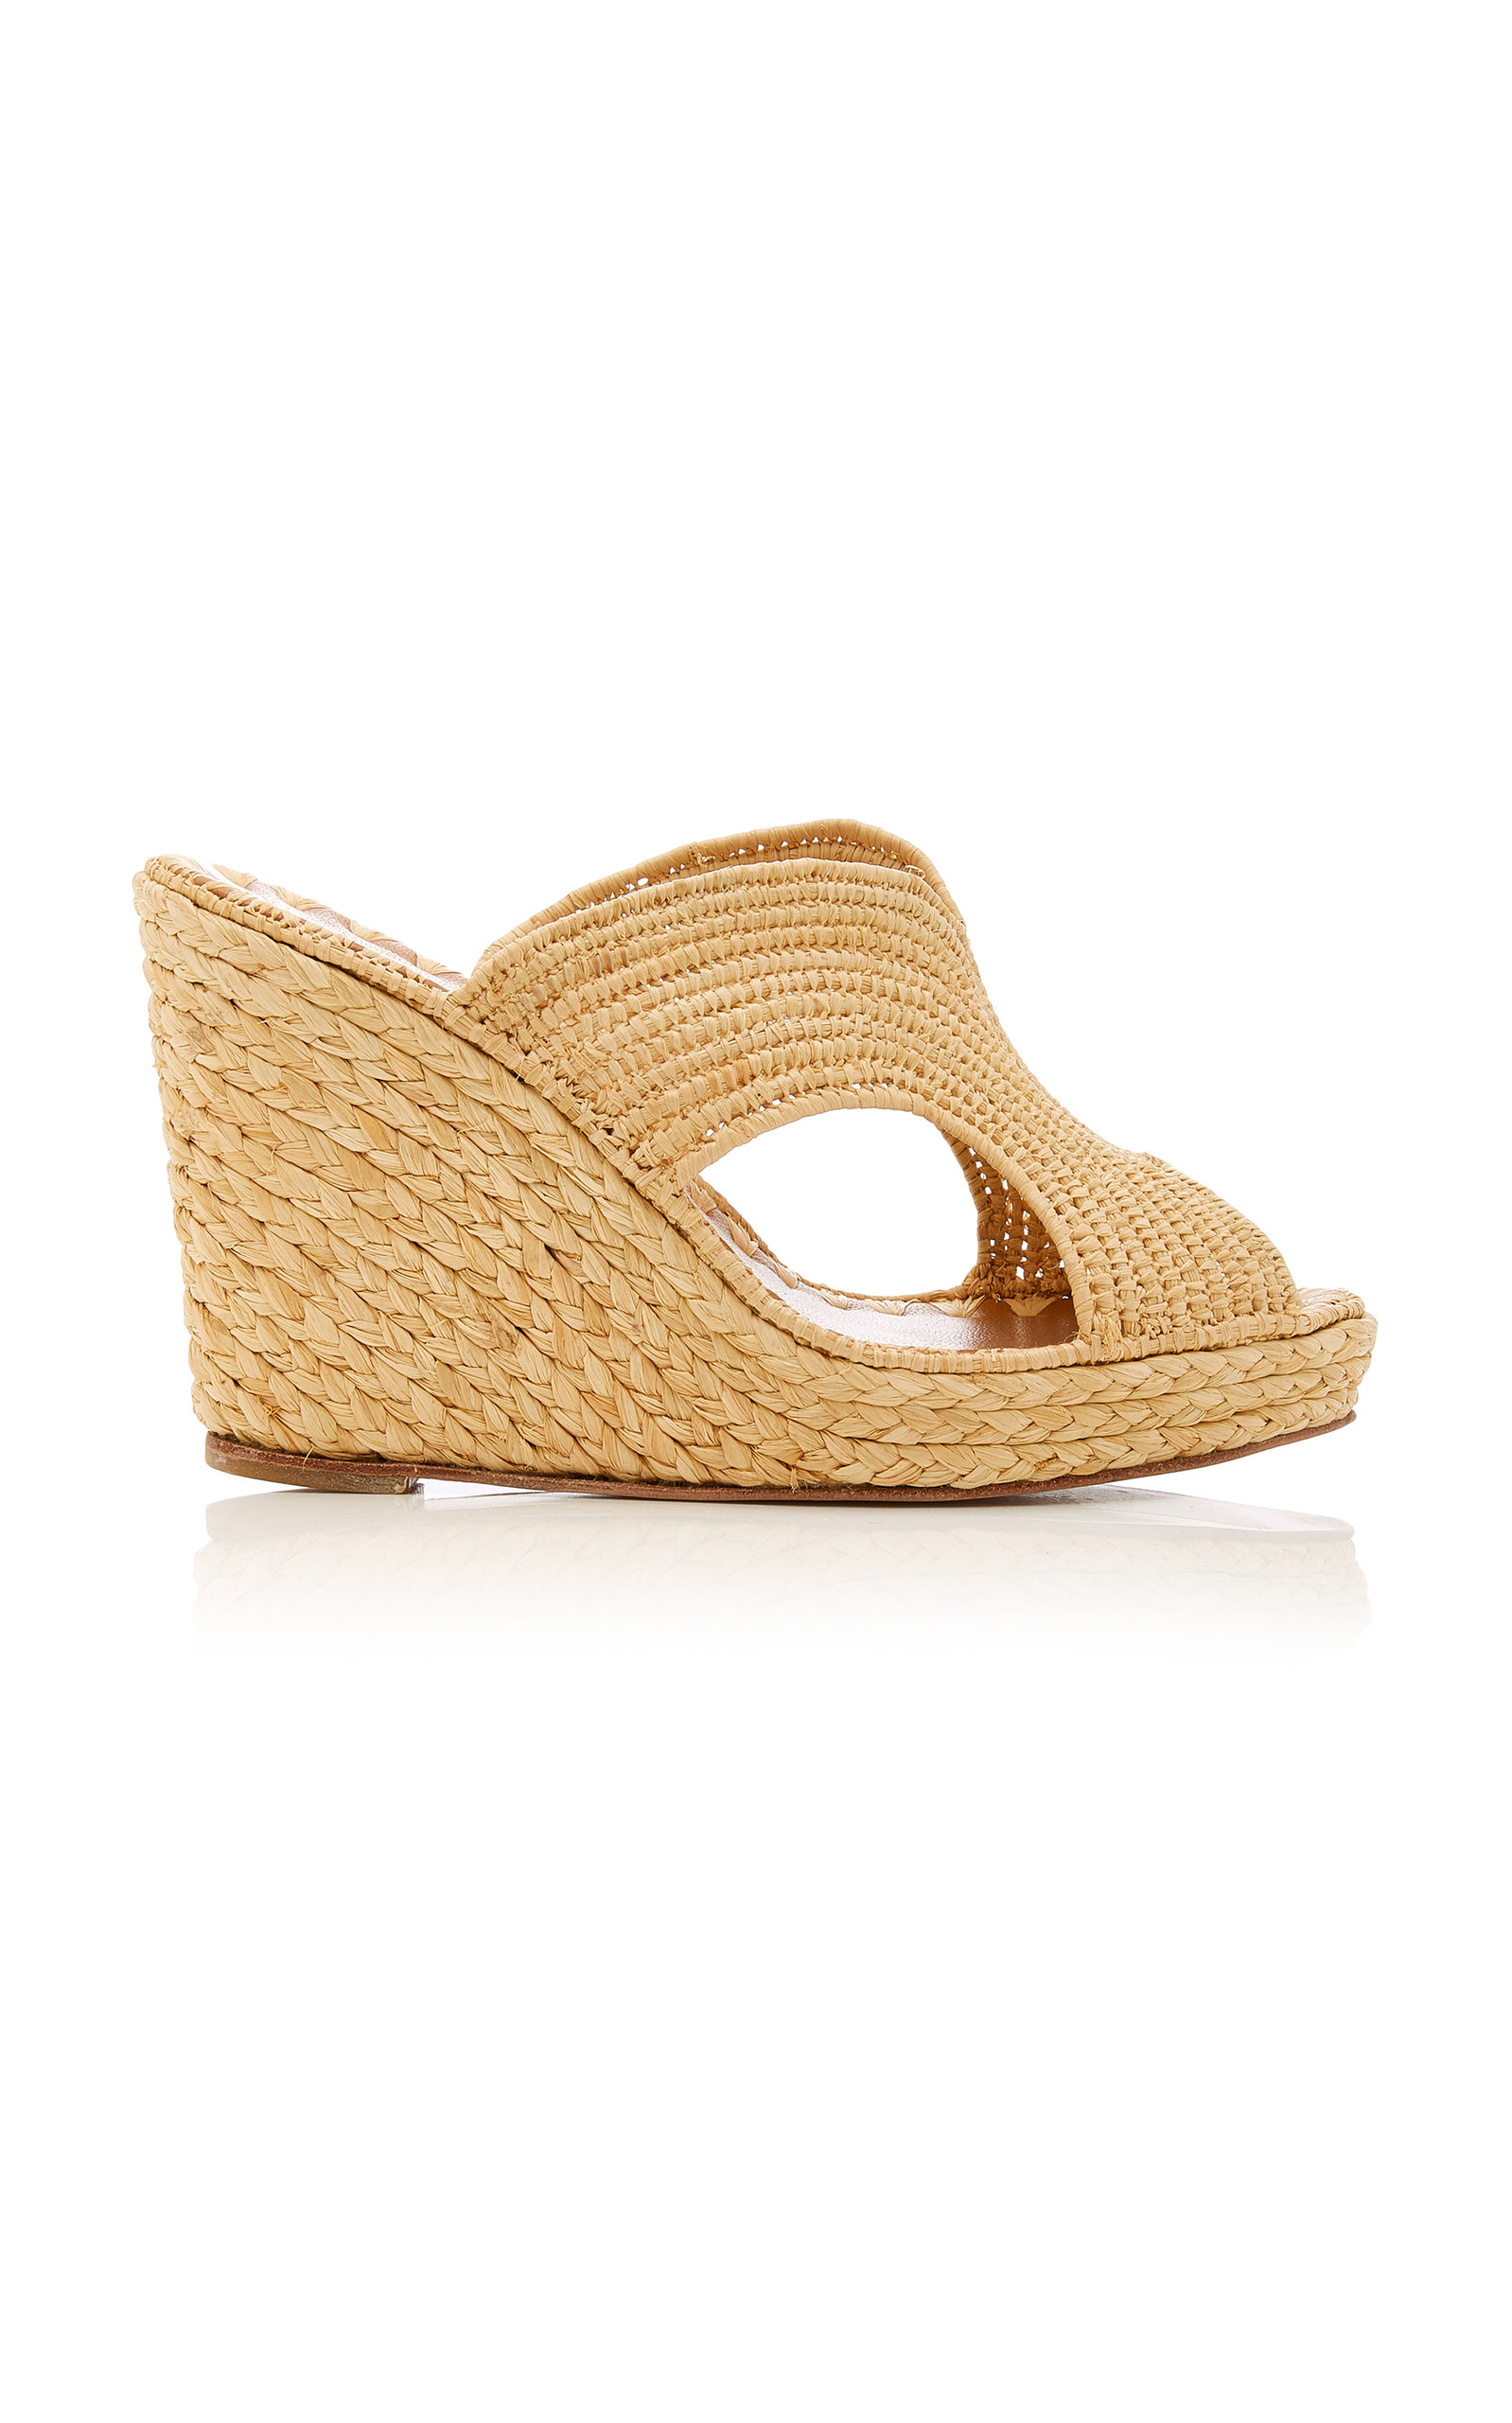 Carrie Forbes LINA SANDAL